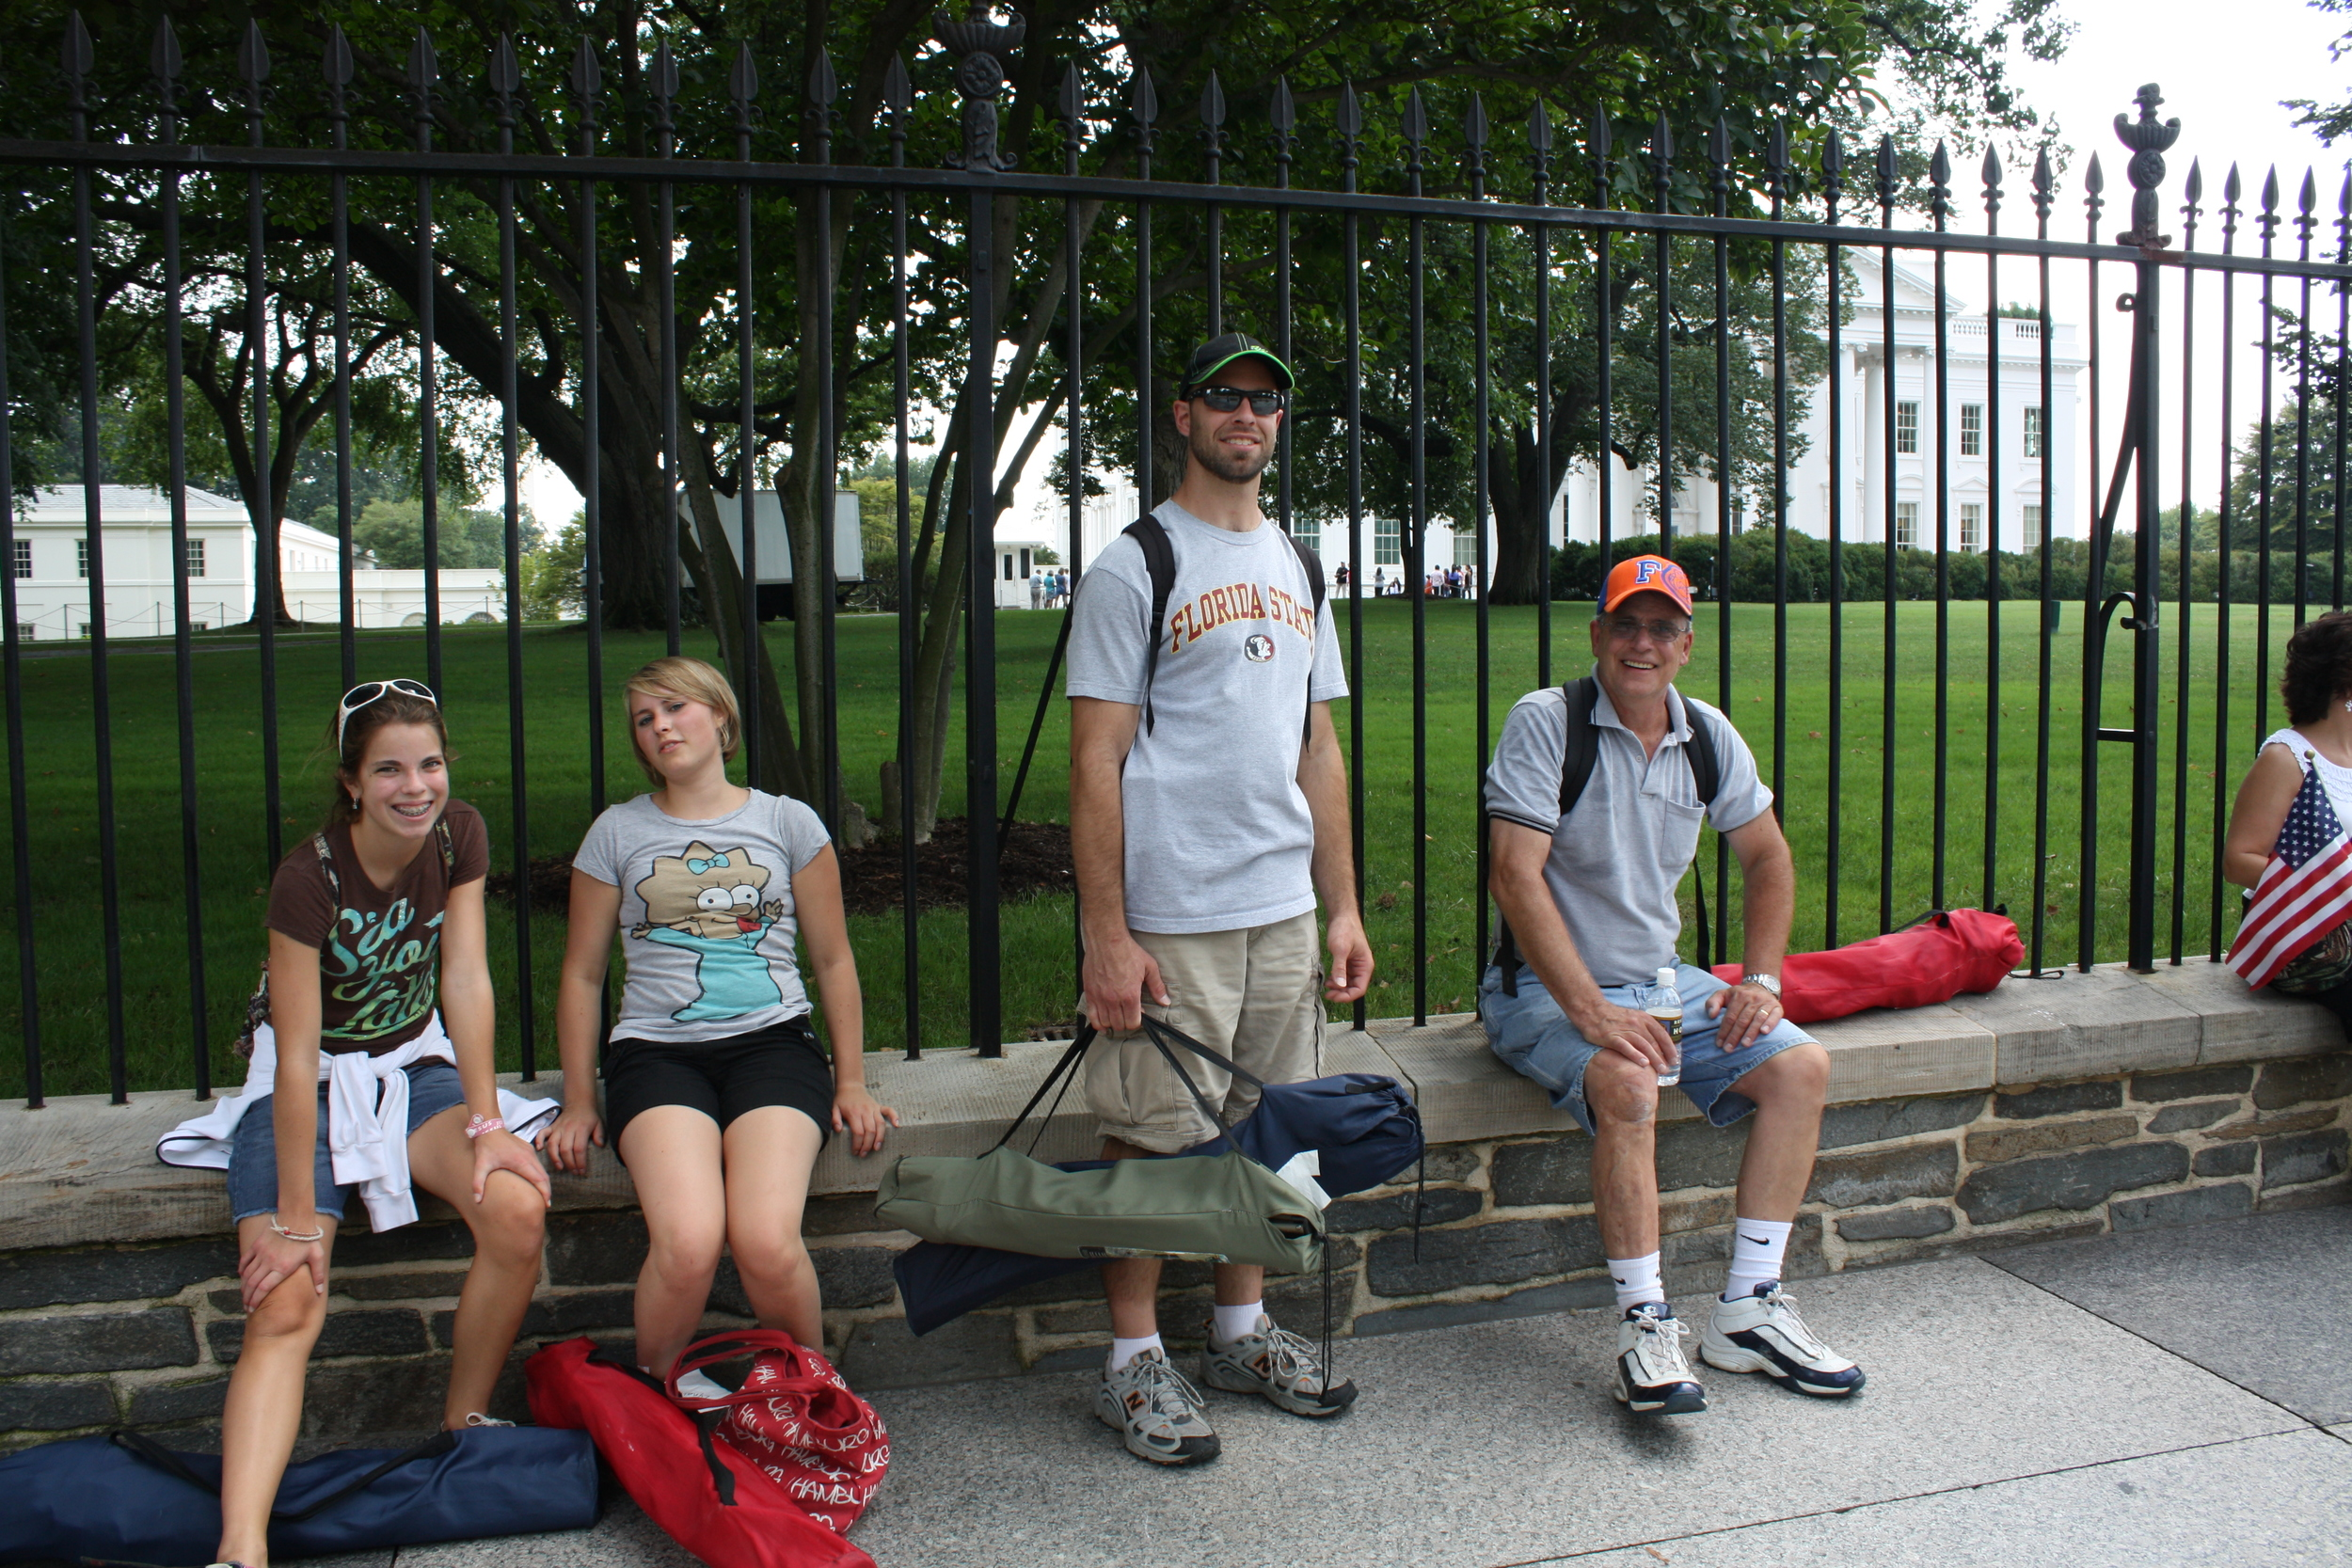 THE TIRED BUNCH WITH THEIR CHAIRS AND BACKPACKS